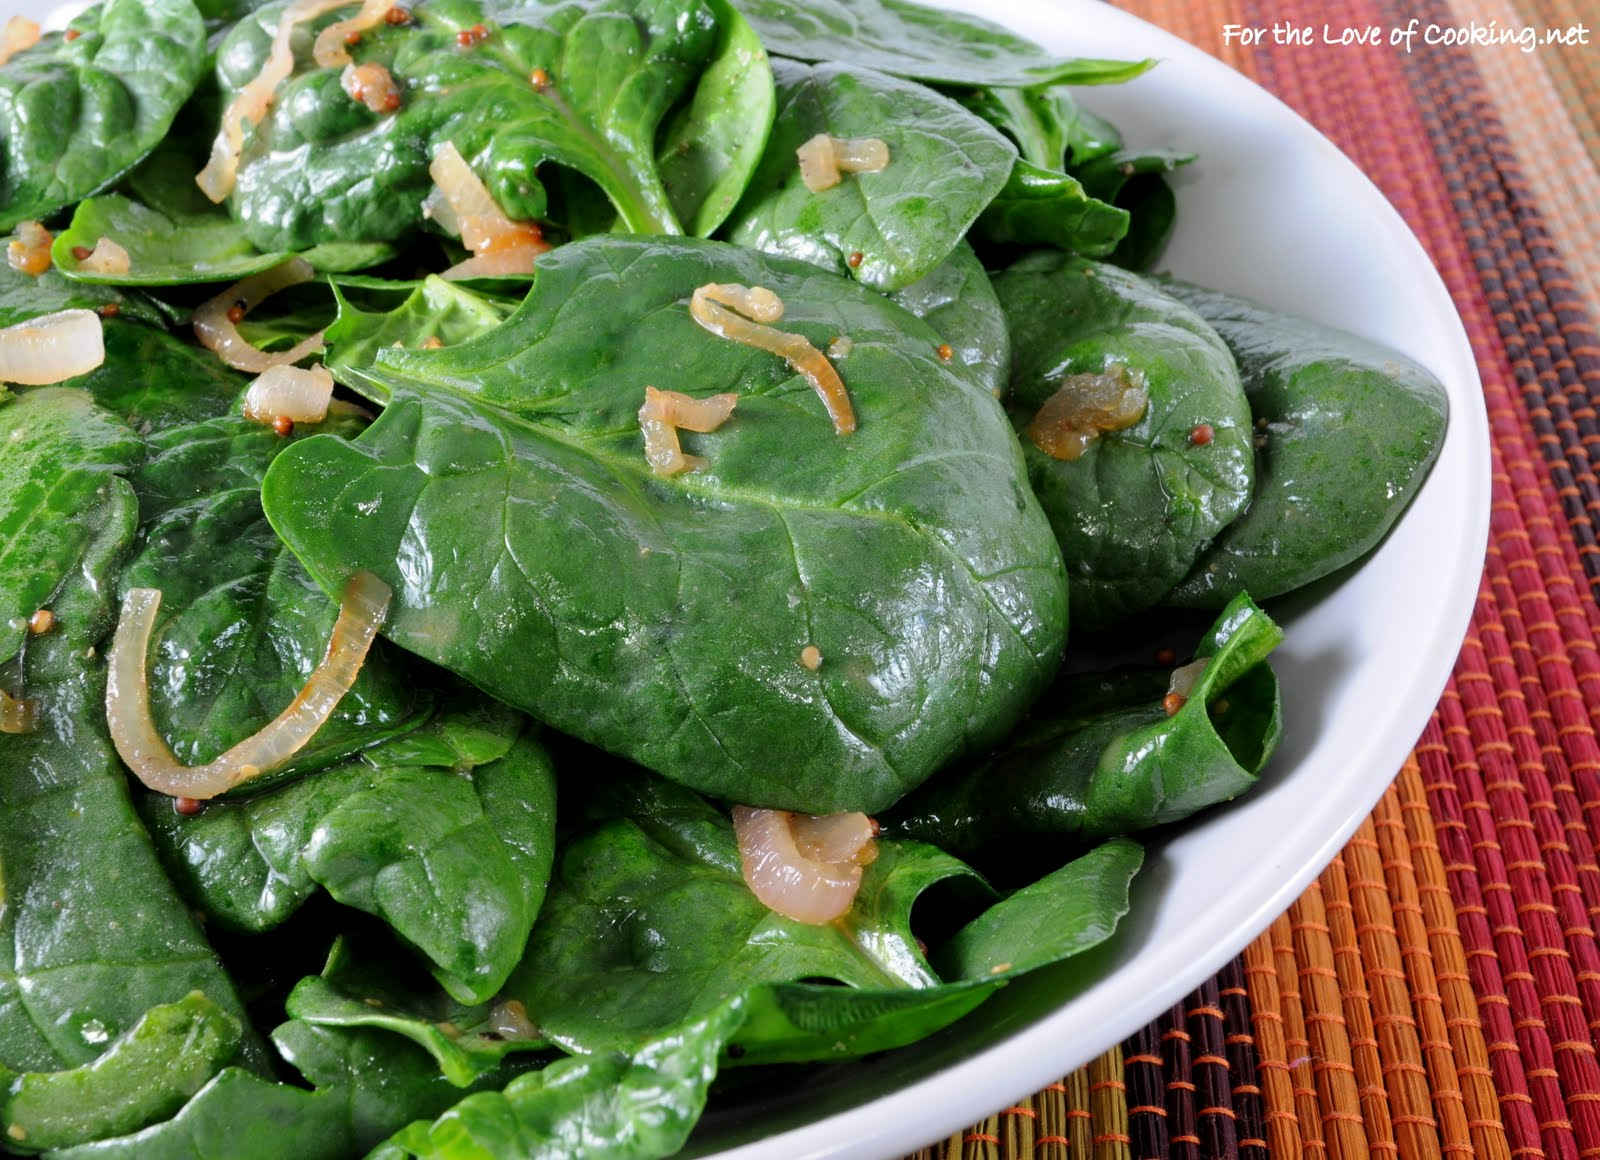 Wilted Spinach Salad with Caramelized Shallots | For the Love of ...